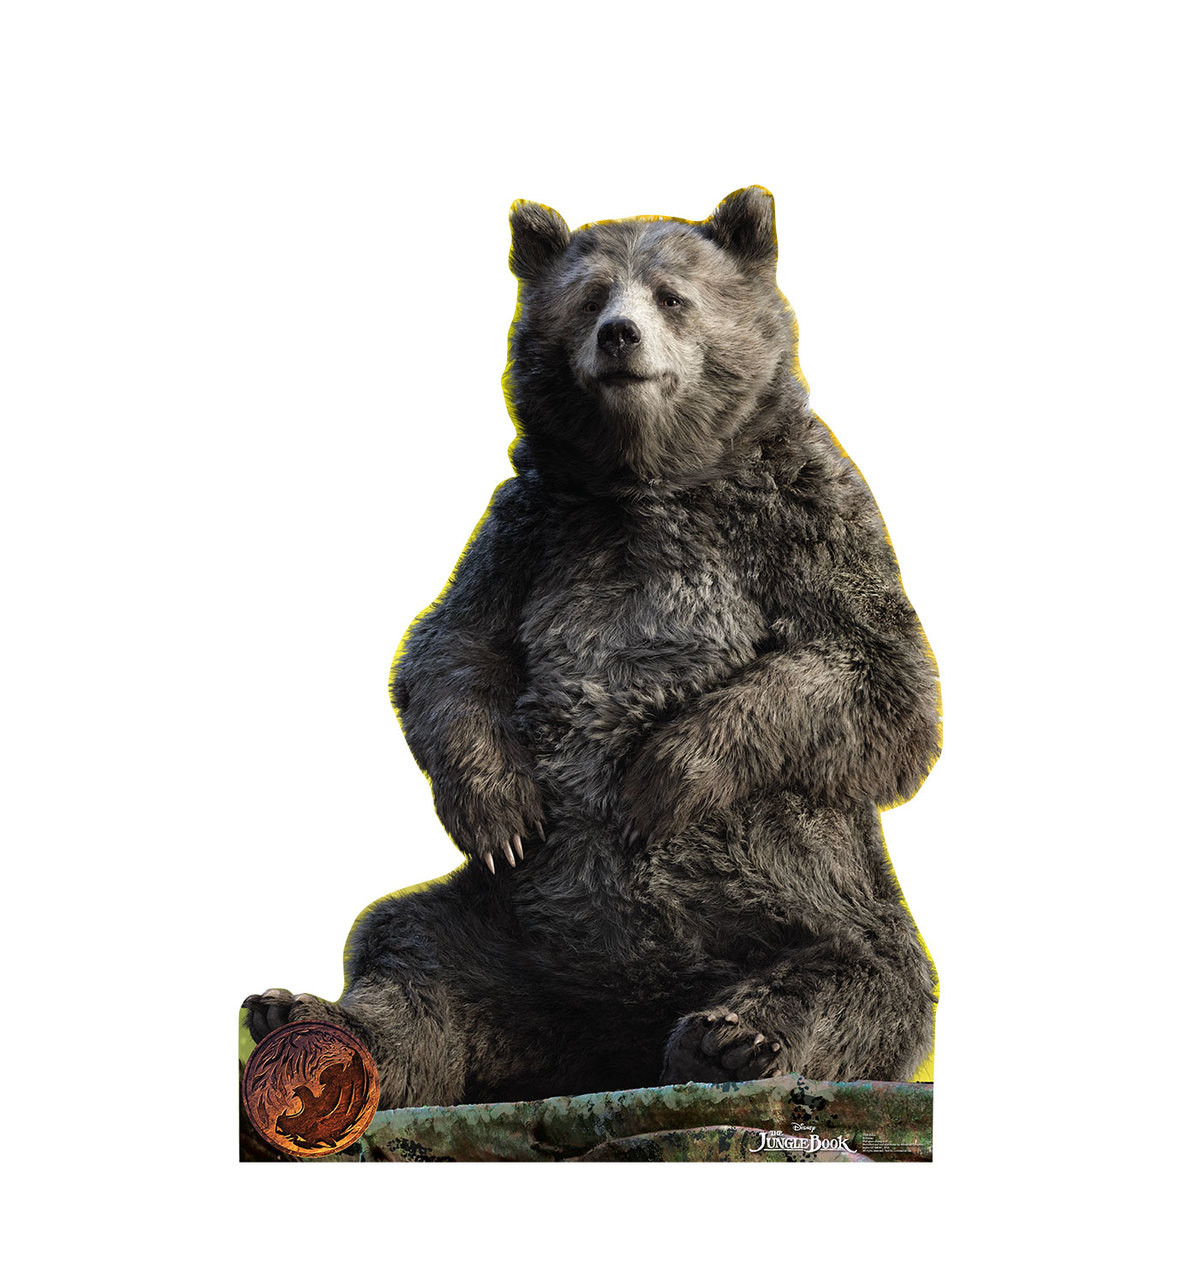 Baloo - The Jungle Book - Cardboard Cutout Front View